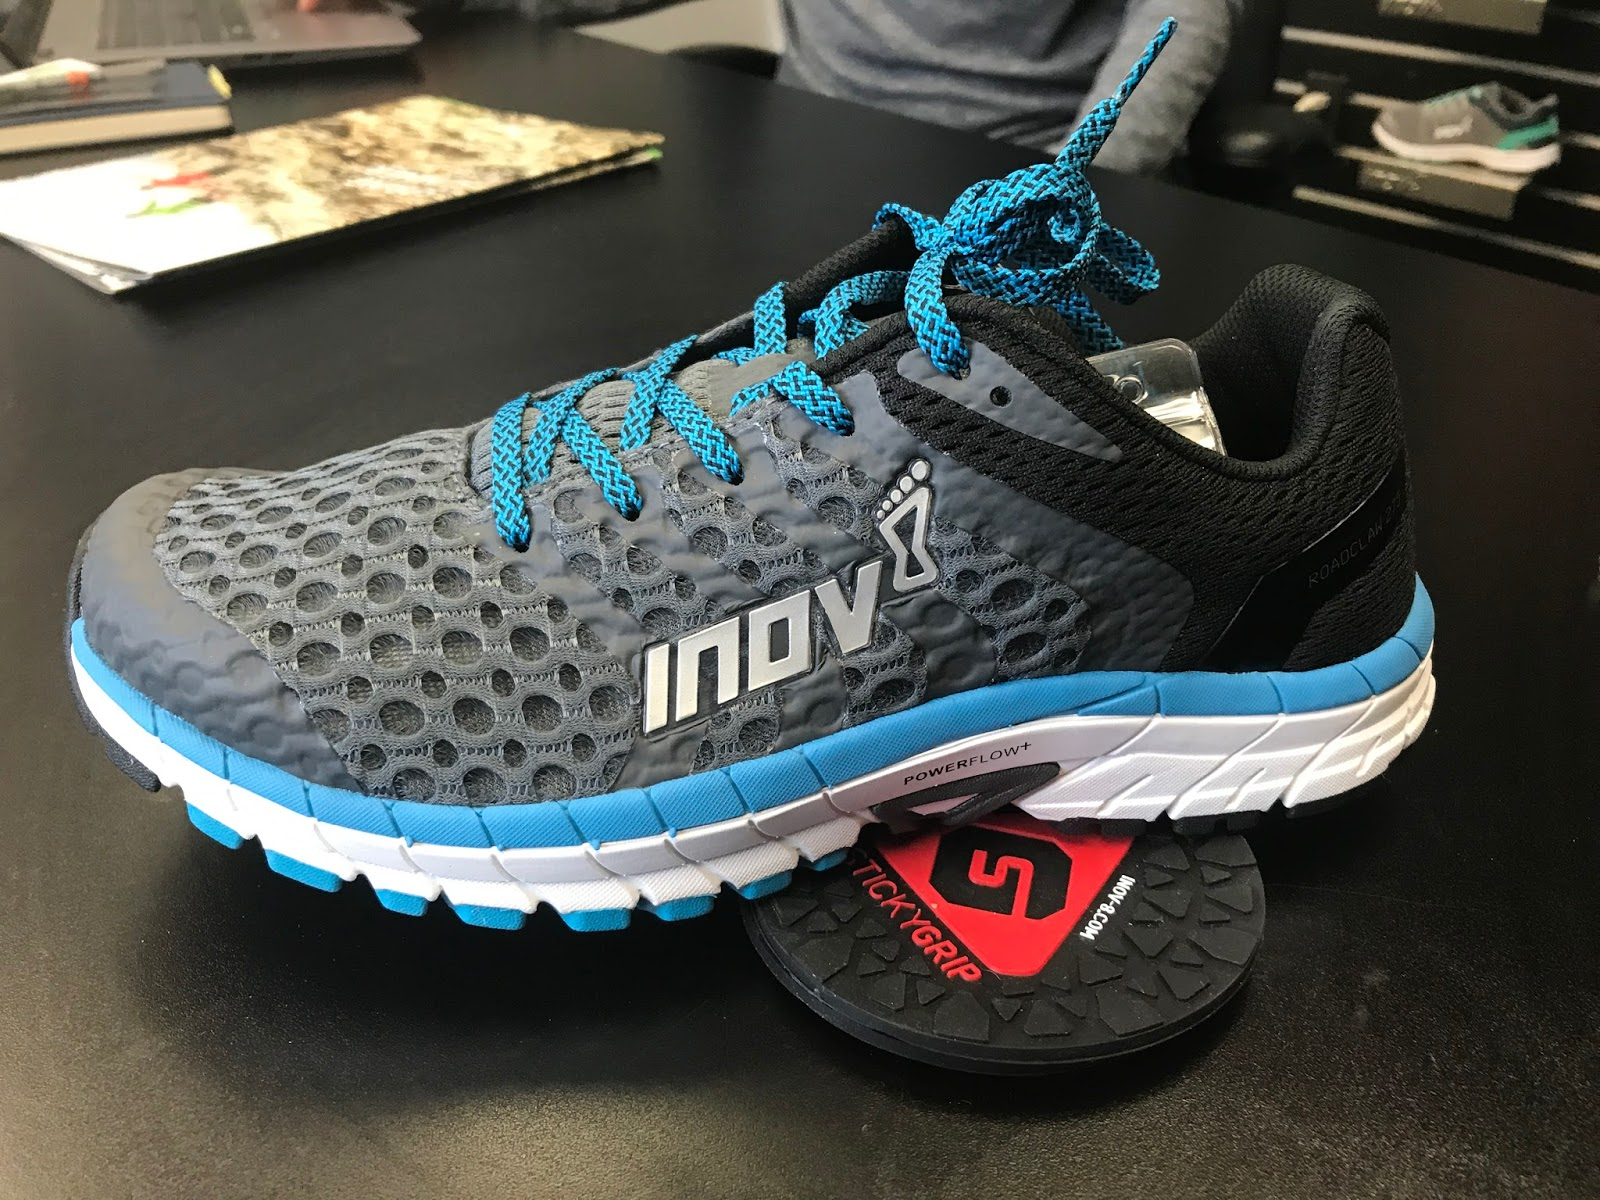 ed425944f7e The RoadClaw 275 v2 is Inov-8 s core road trainer. I tested v1 and found it  lumpy and quite harsh underfoot with considerably more stitching than the  new v2 ...